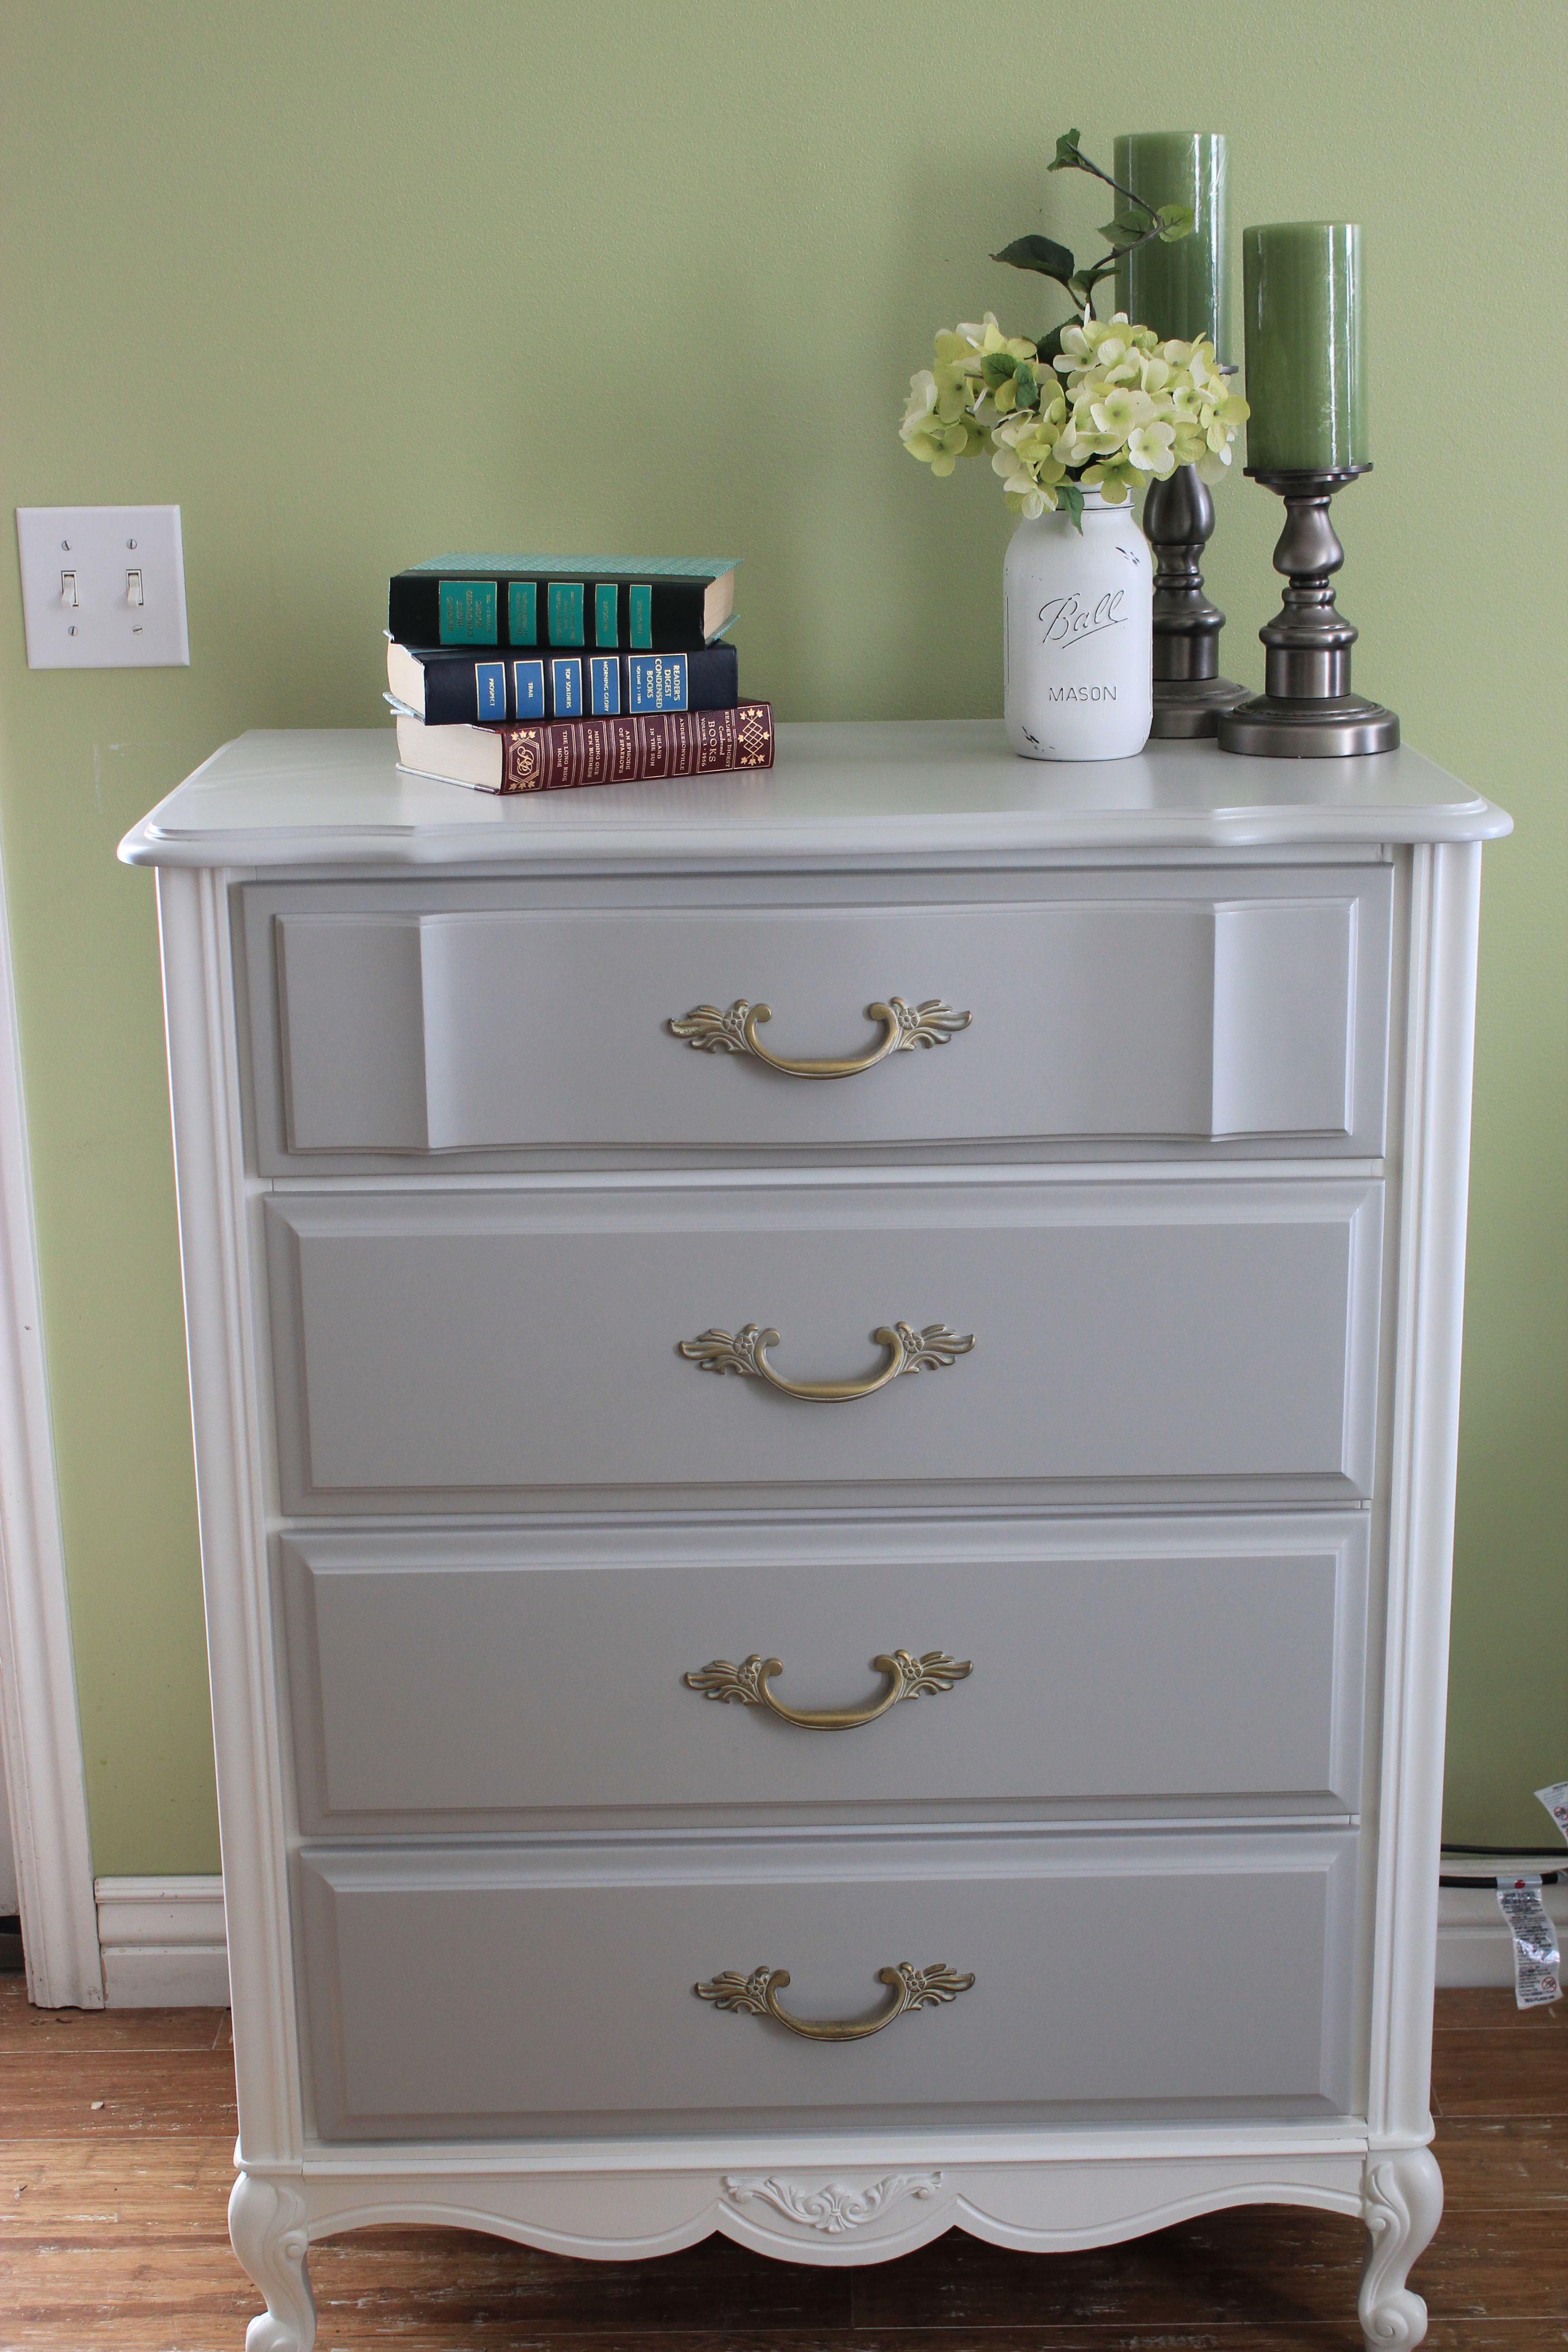 French Provincial Tall Boy Painted White And Grey Painted French Provincial Furniture French Provincial Dresser Makeover White Painted Dressers [ 5184 x 3456 Pixel ]